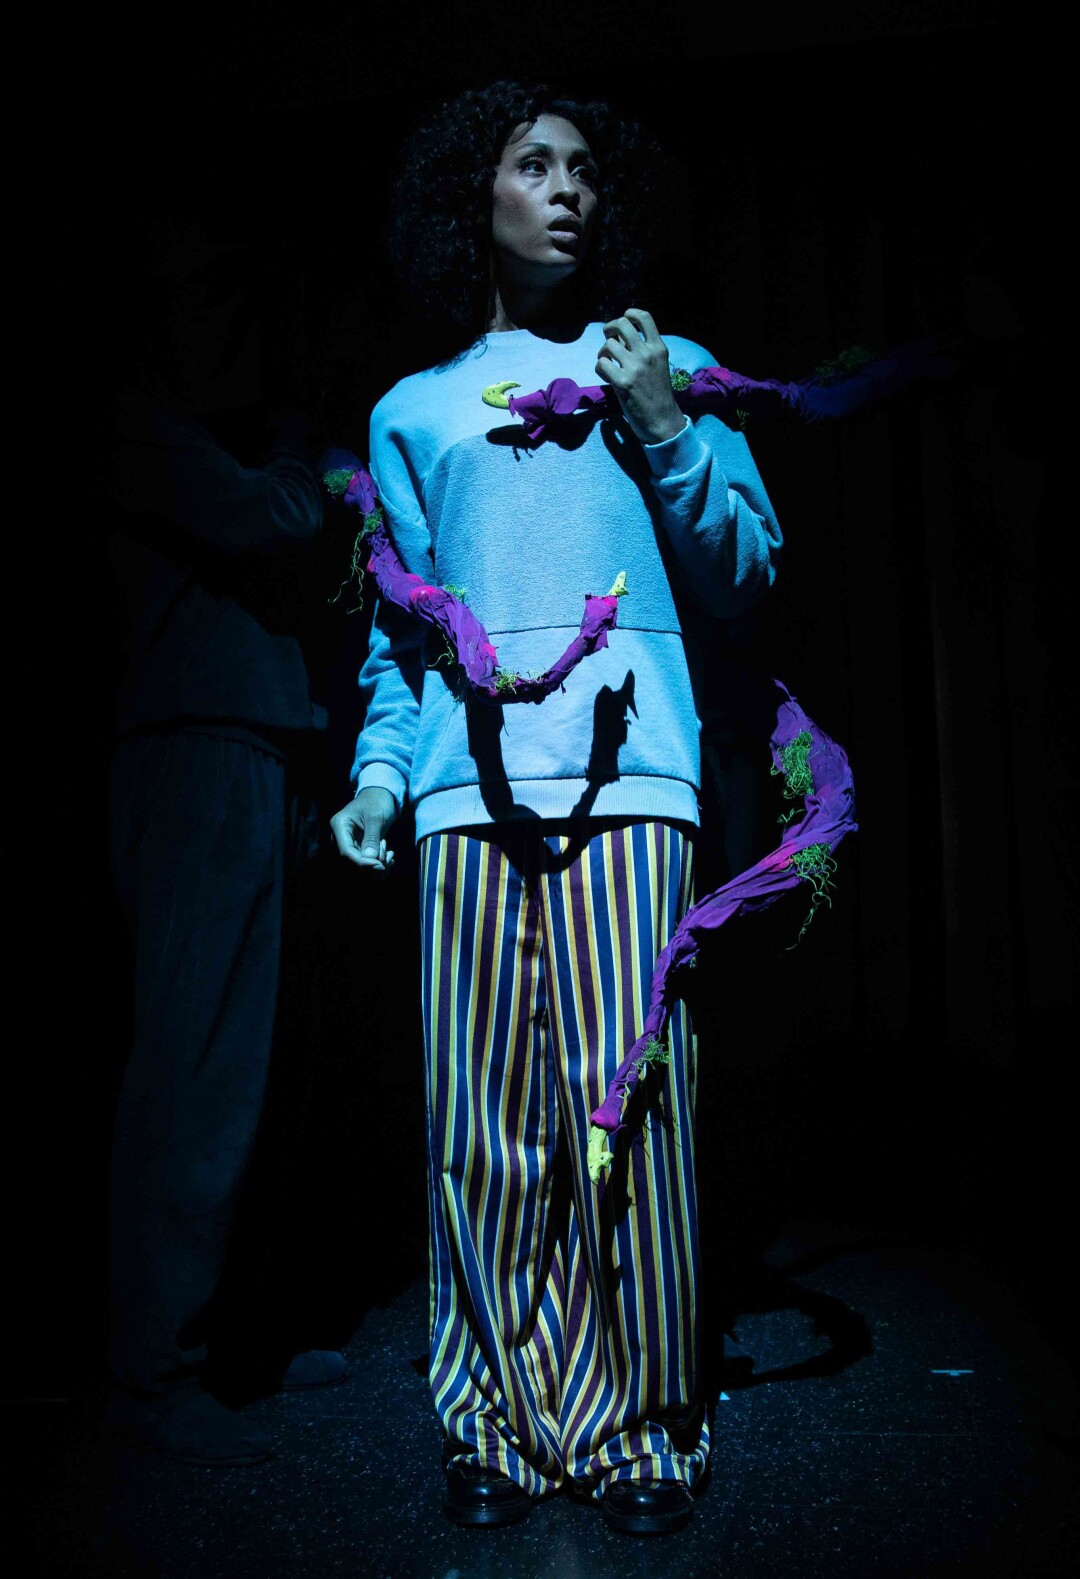 Mj Rodriguez's Audrey is taken captive by the plants tendrils, operated by puppeteers in darkness upstage.